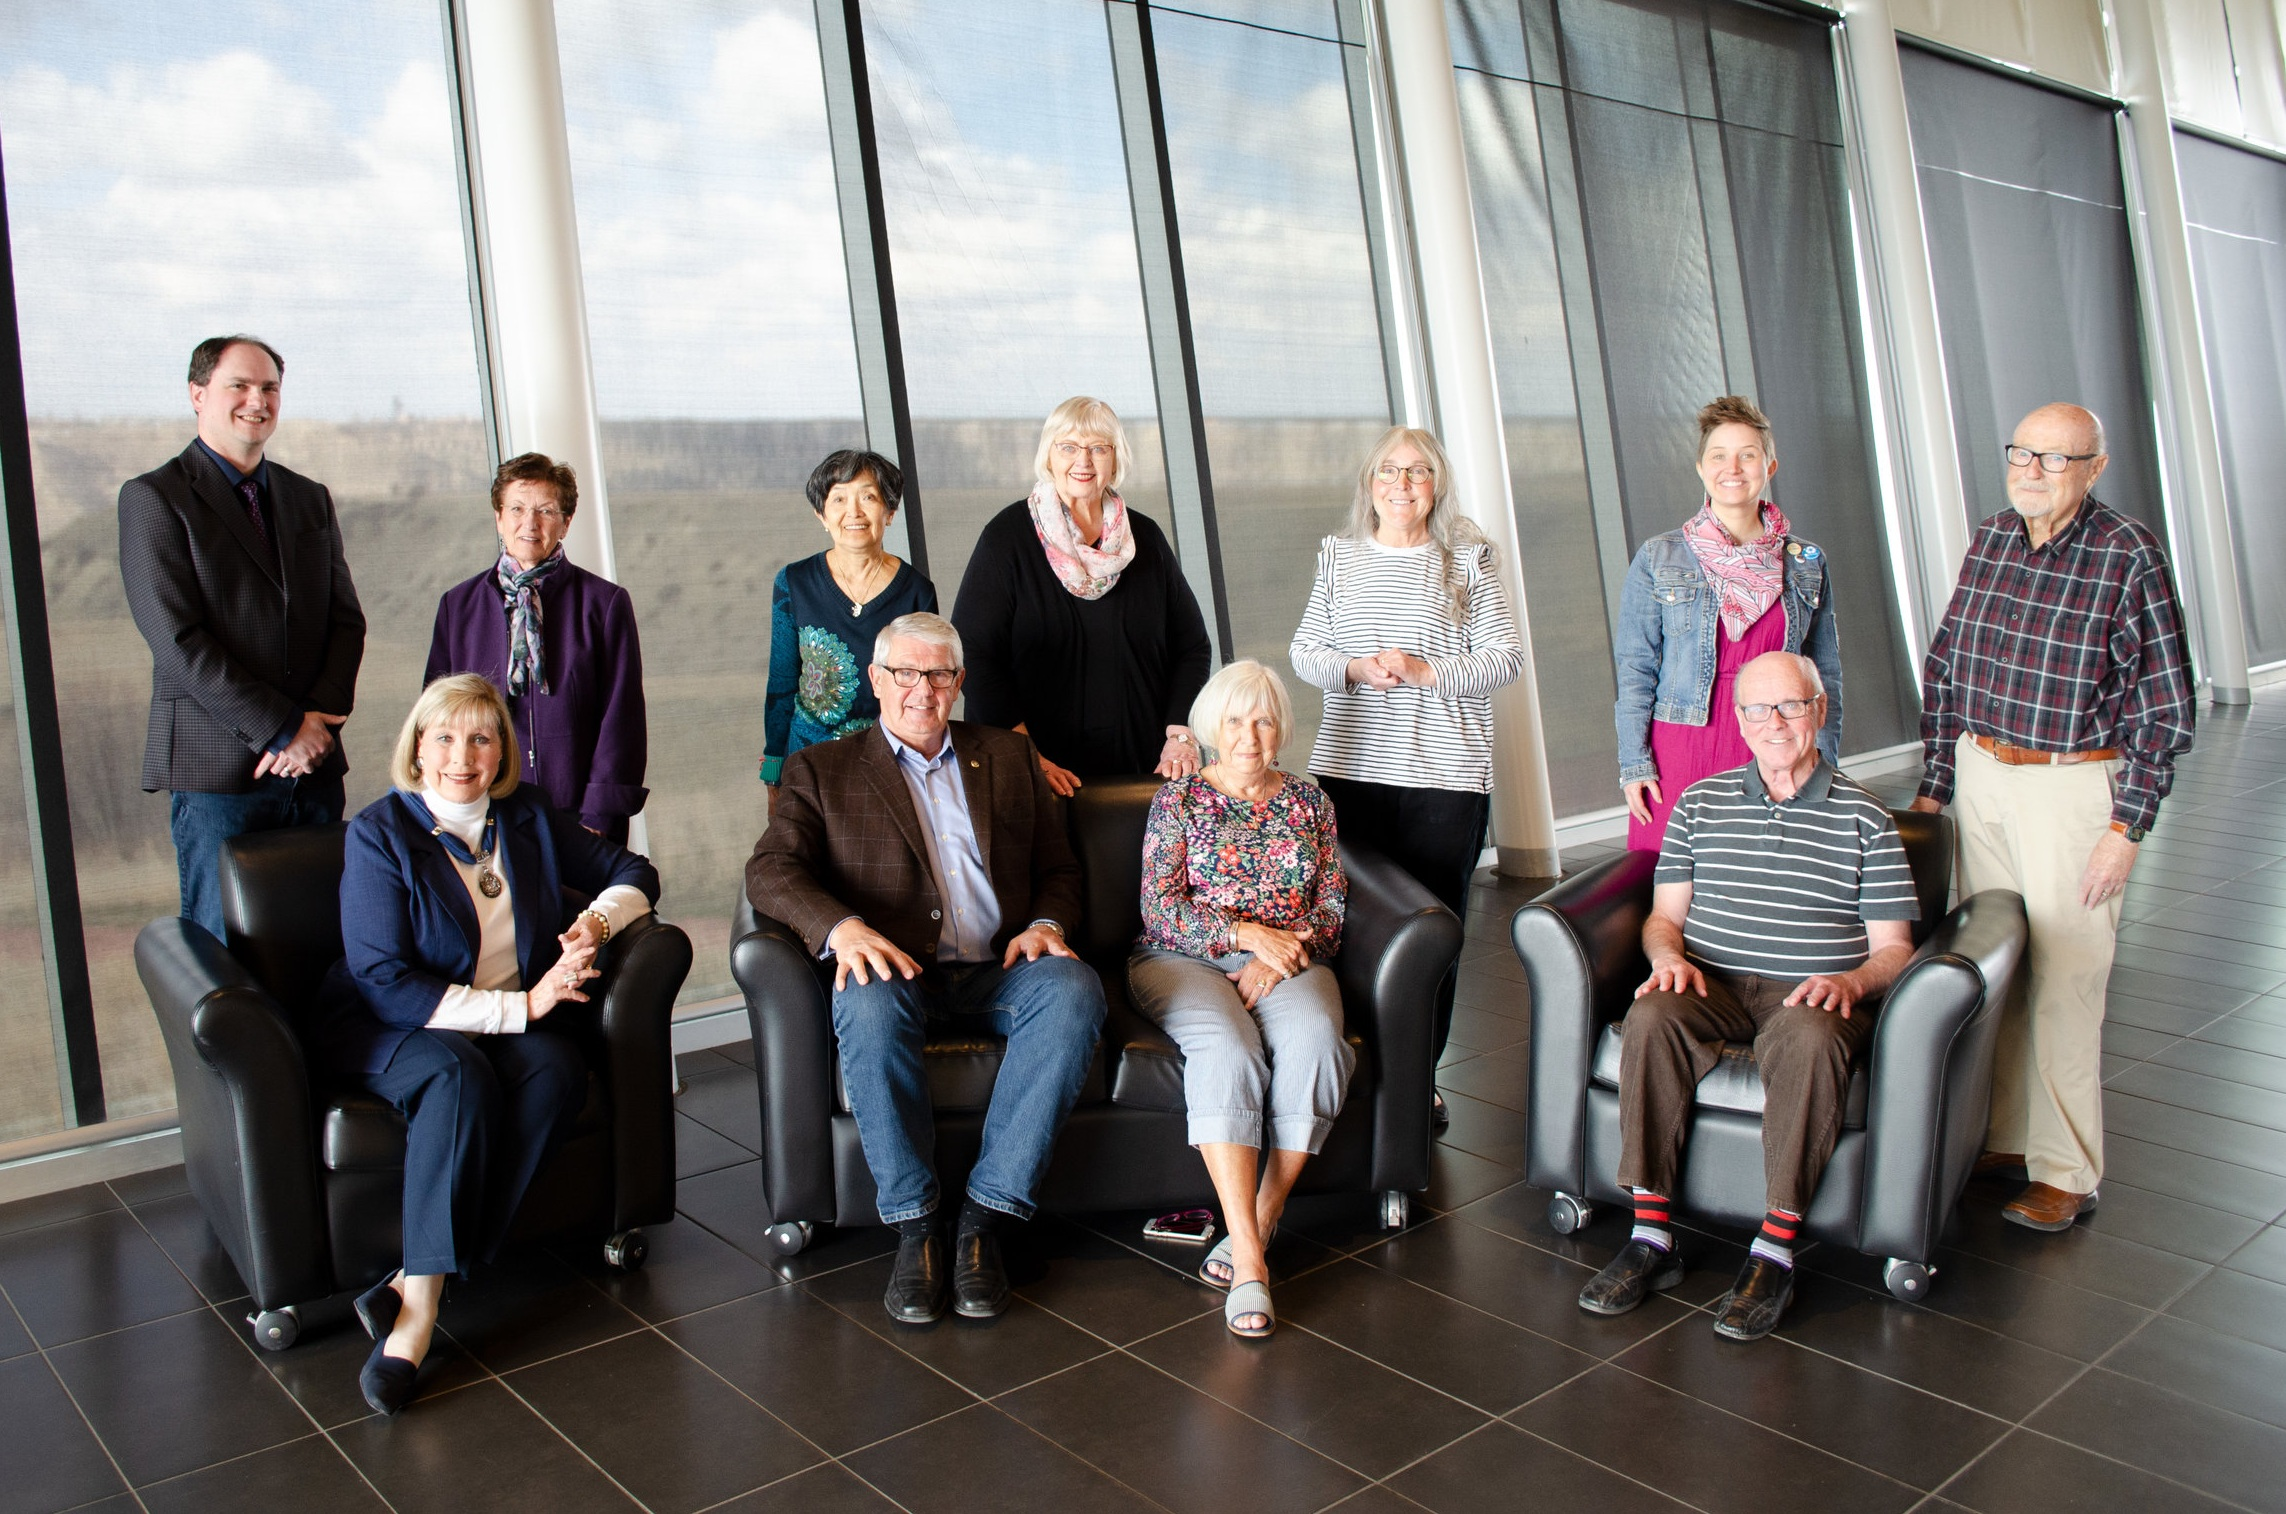 Standing: Chris Roedler, Penny Dodd, Ruth Liska, Mary Oordt, Linda Cofman, Hilary Squires, Allyn Mills  Seated: Elisha Rasmussen, Dr. Glenn Coulter, Sandy Whyte, Ian McDonald.